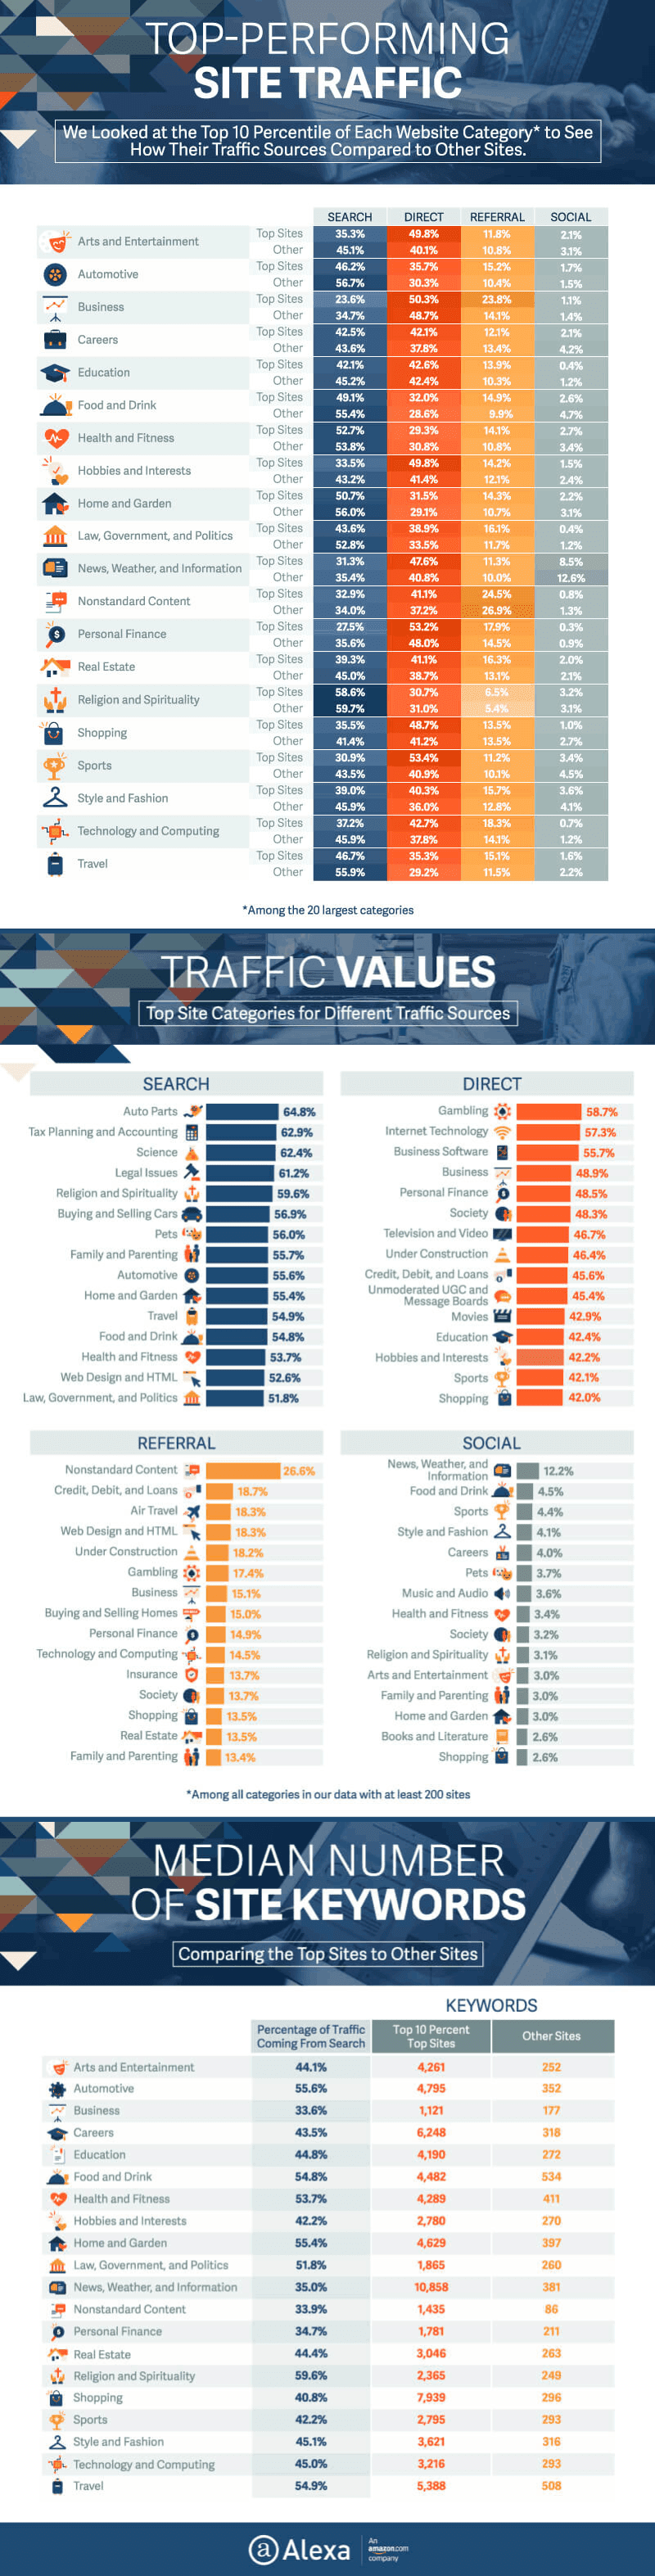 The Traffic Sources of Top Websites by Industry - A Study